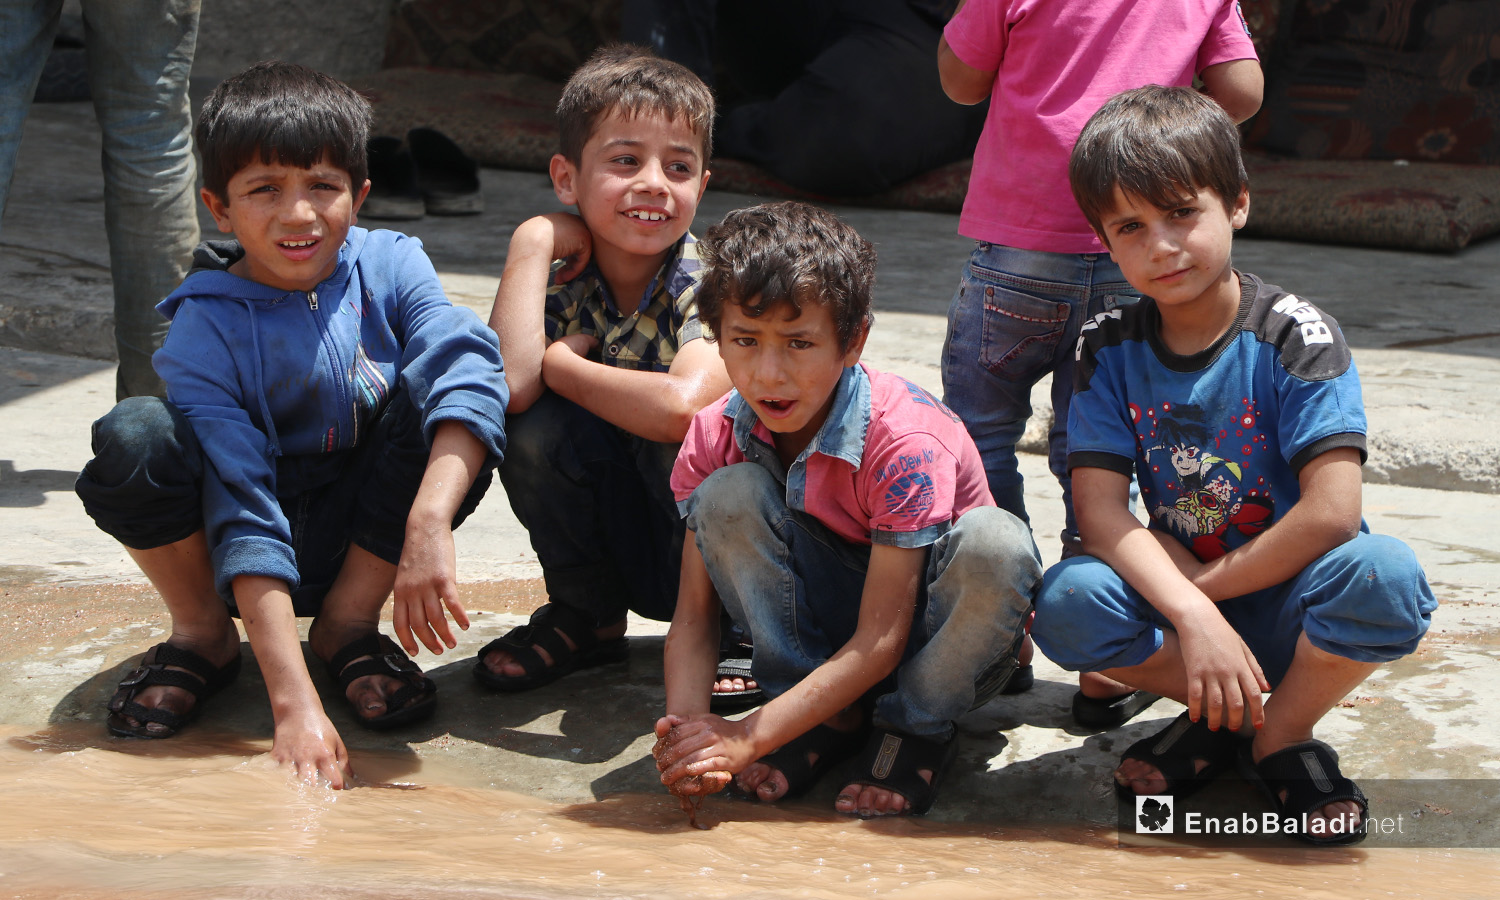 Children playing with leaked water due to the breakdowns of the water pipes system that provides water for the al-Bab city in northern Aleppo countryside – 20 June 2020 (Enab Baladi / Asim Melhem)